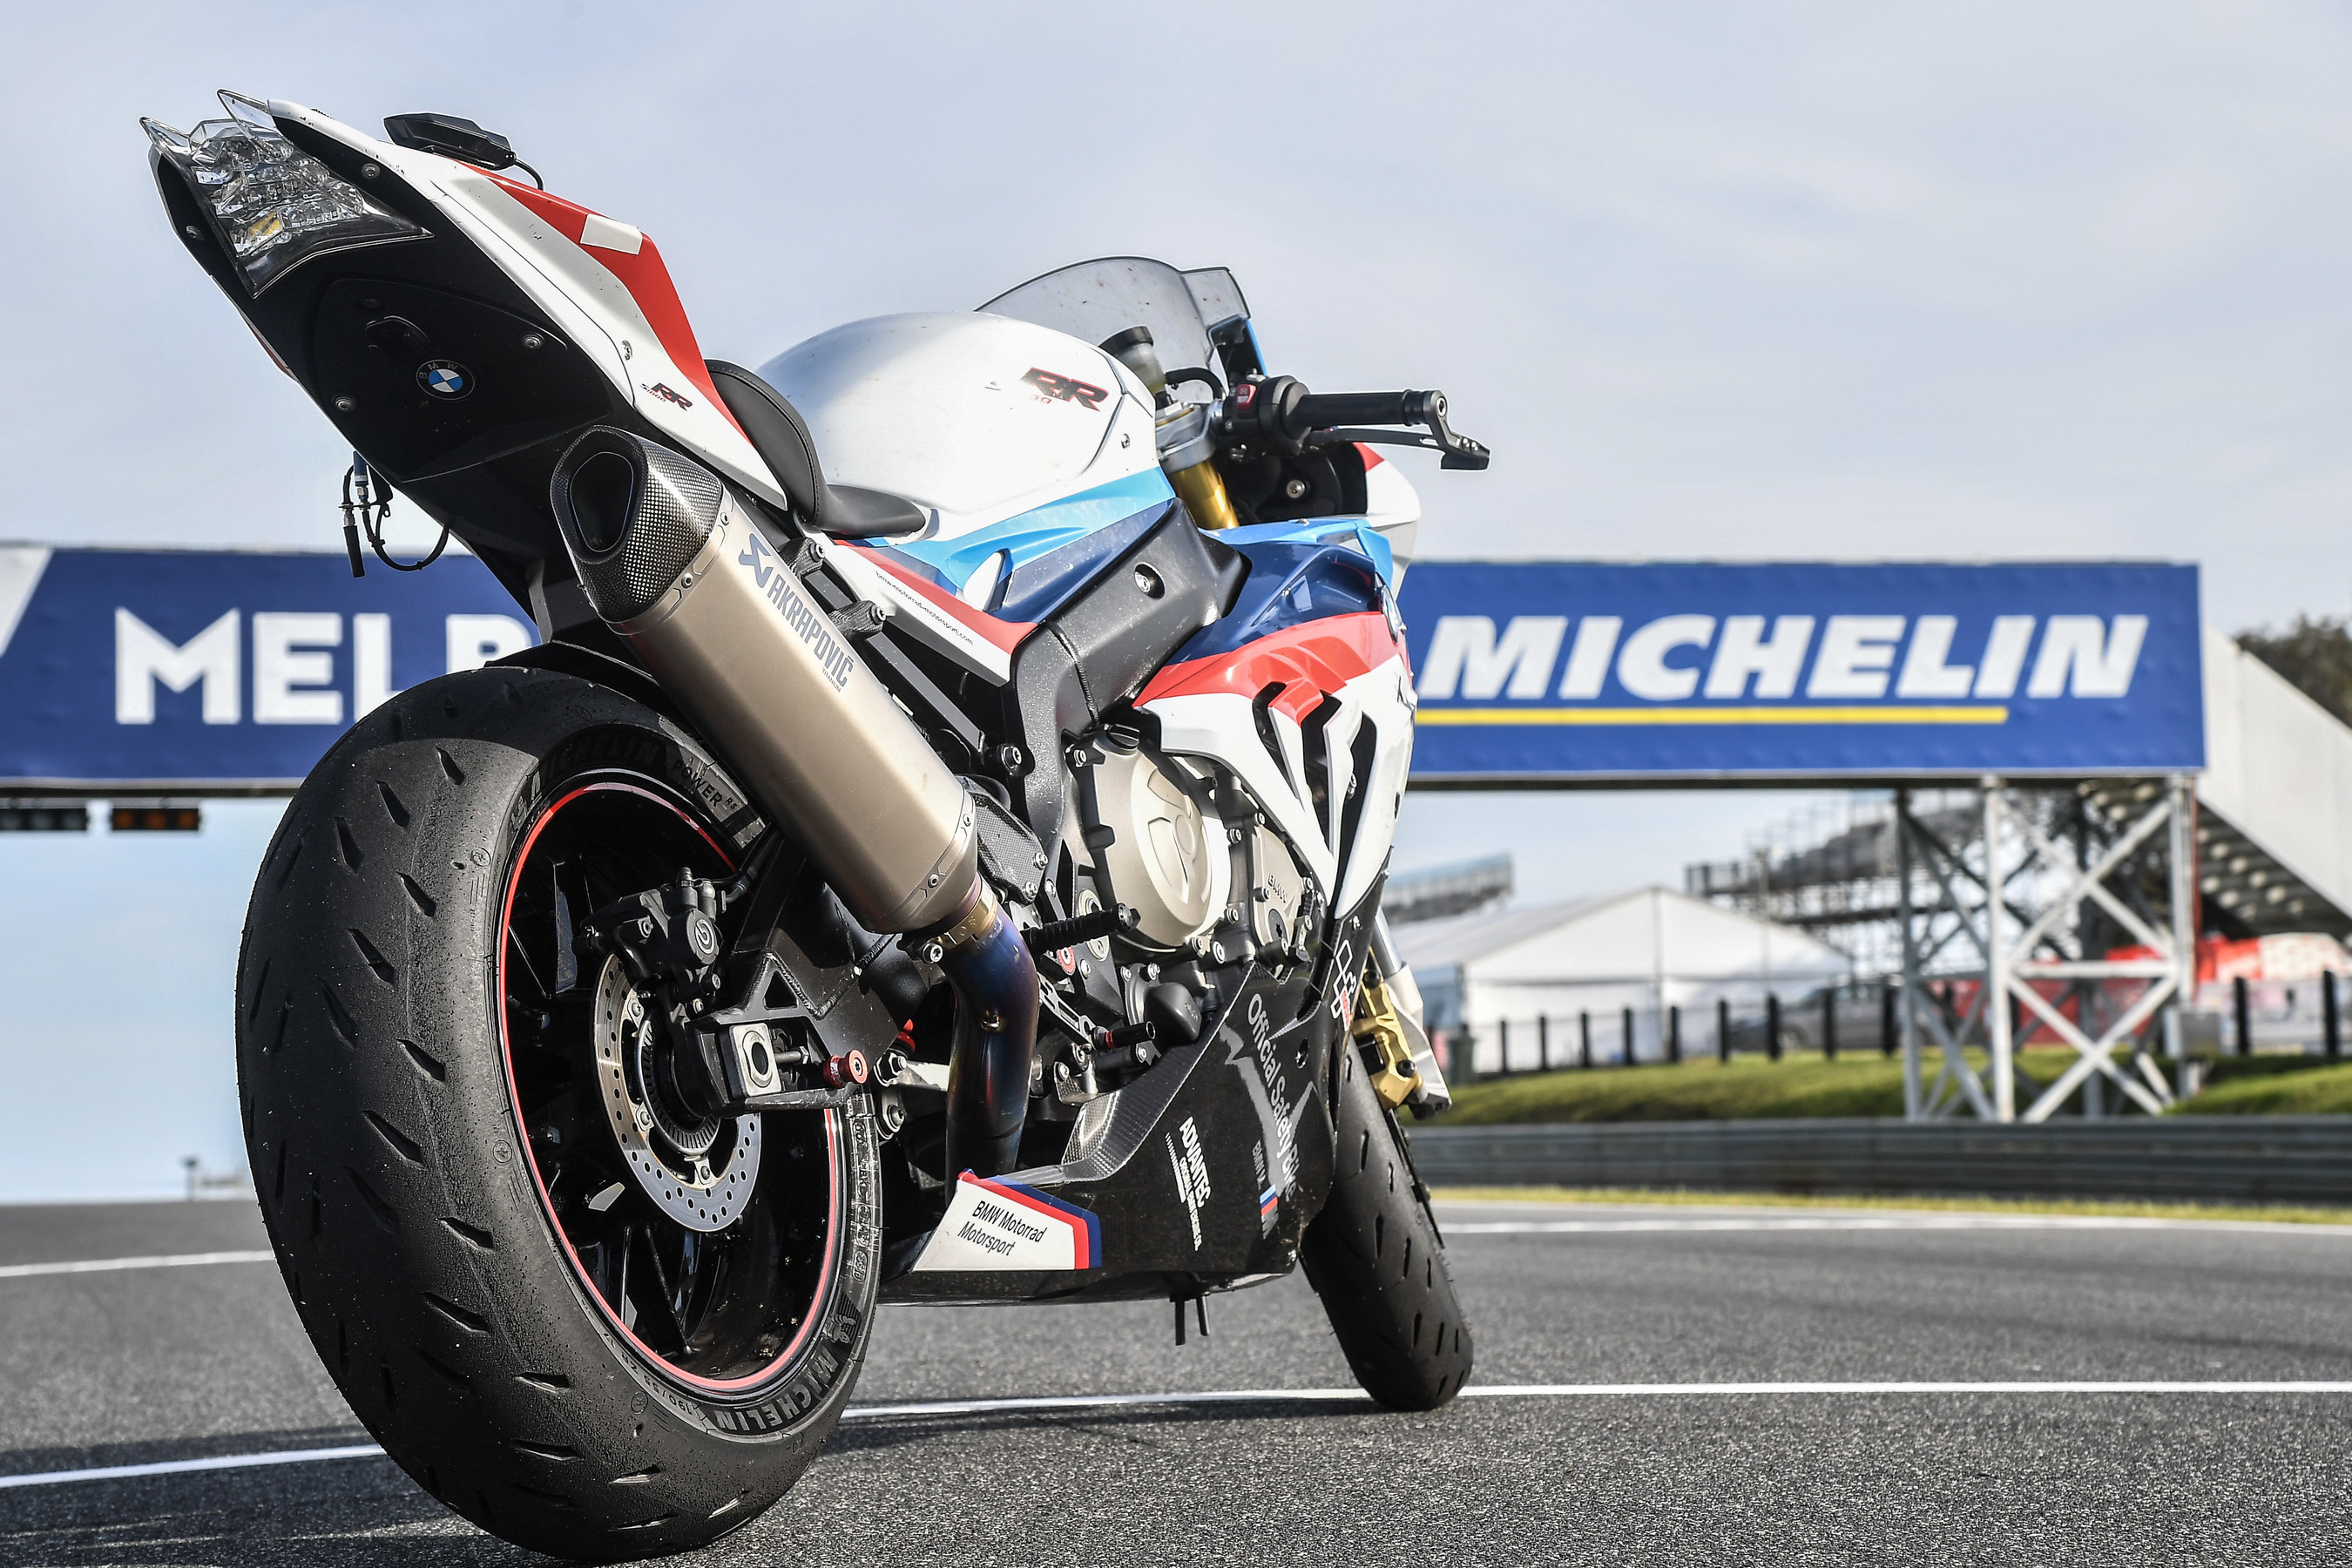 Michelin introduces next generation motorcycle road tire